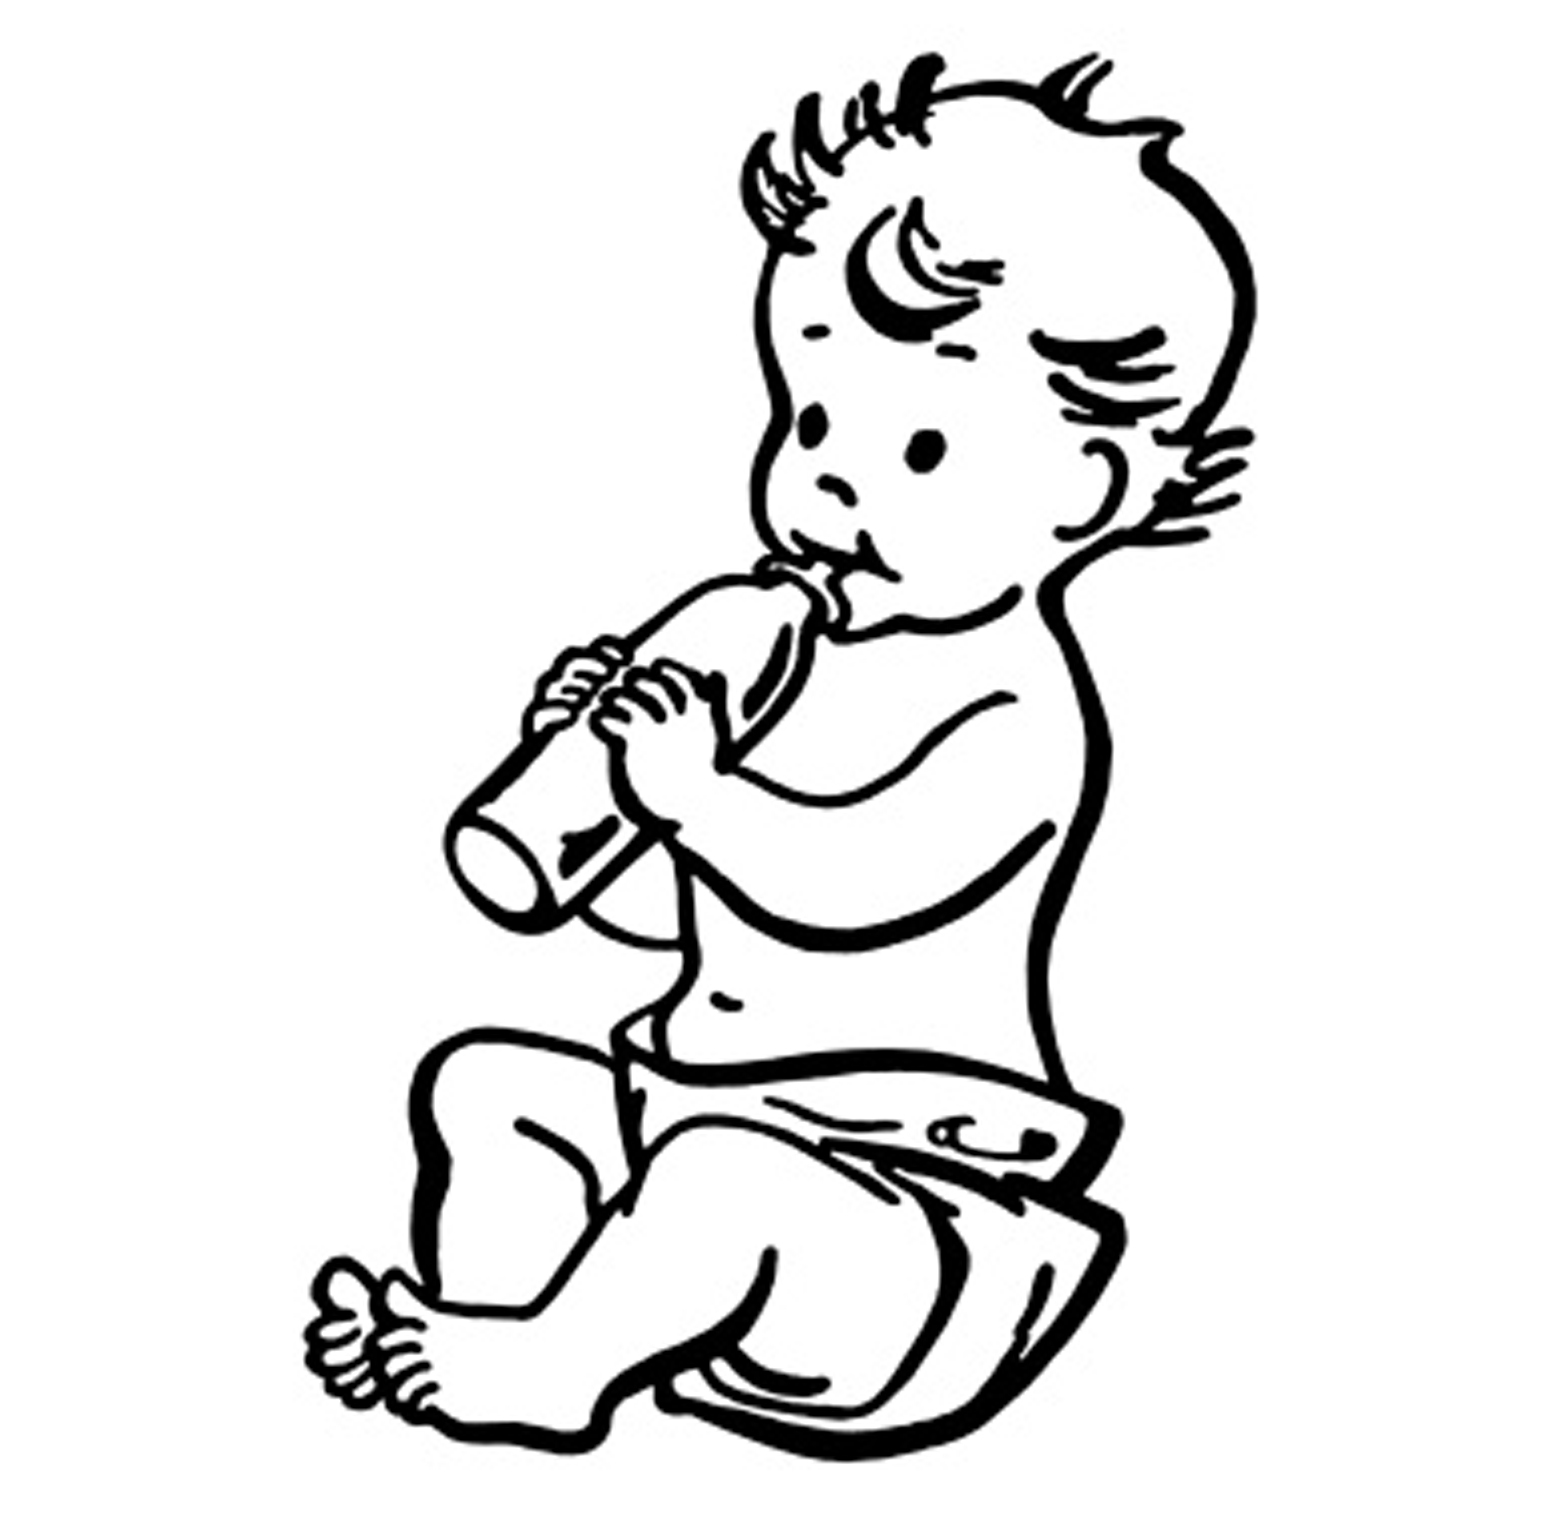 Baby shower black and white clipart free graphic library Black And White Baby Clipart | Free download best Black And ... graphic library